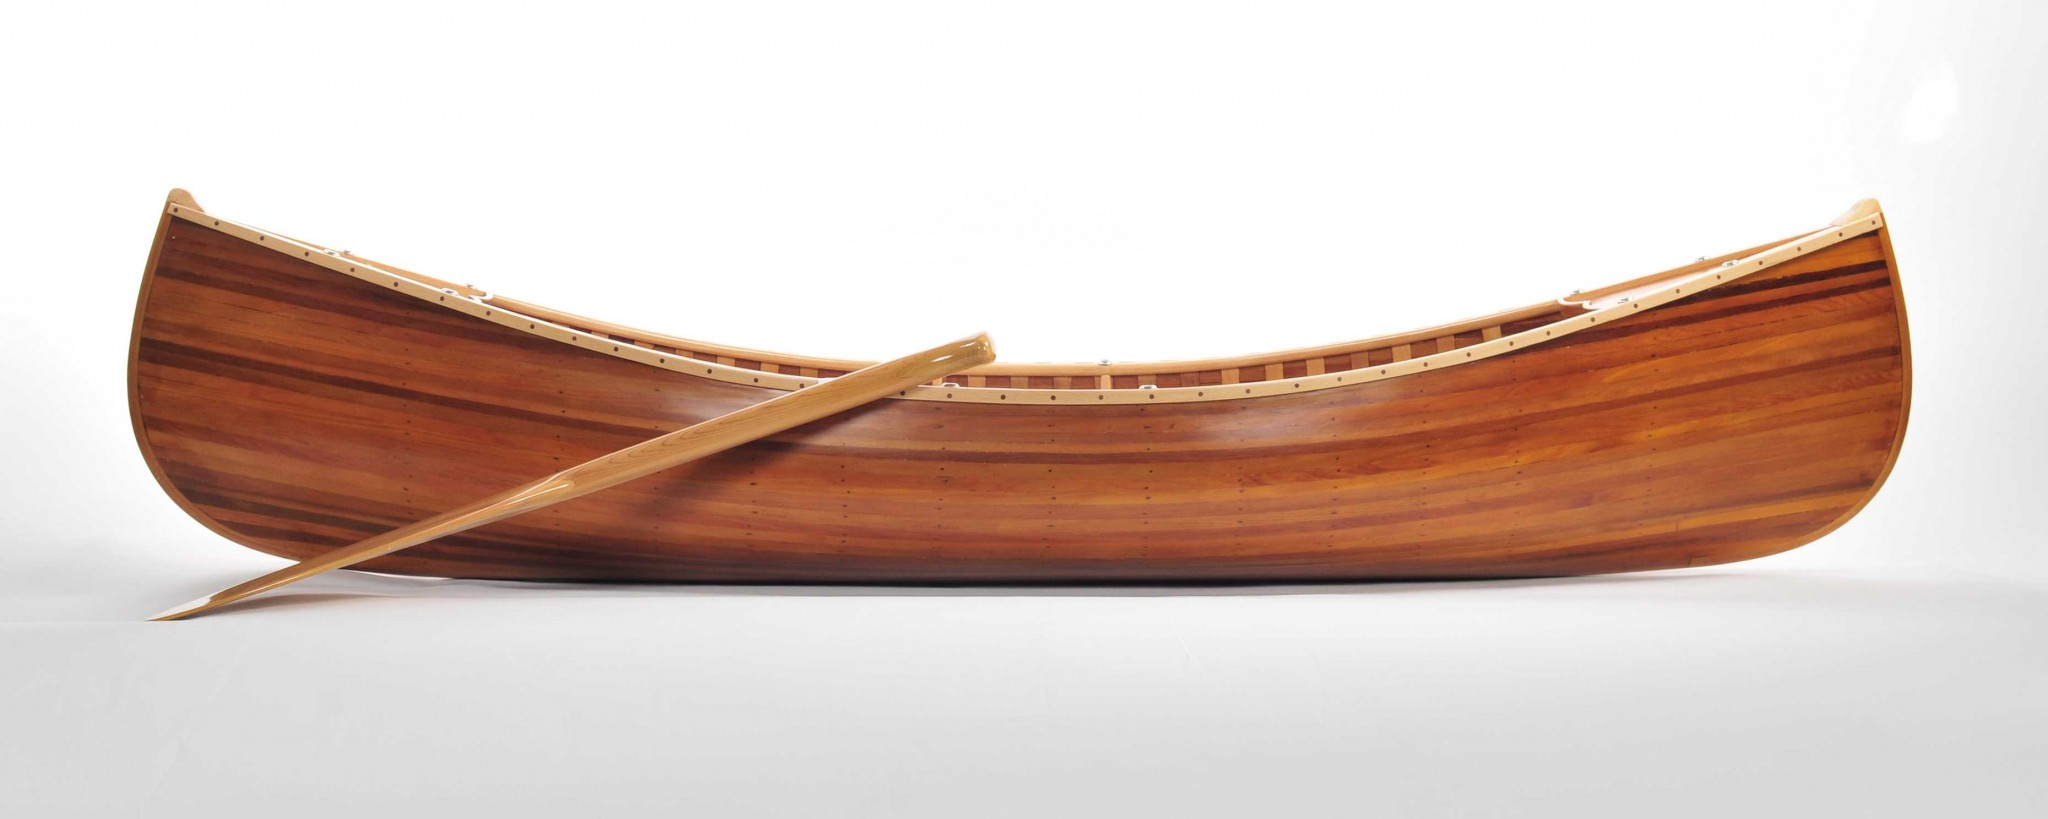 "20.25"" x 70.5"" x 15"" Wooden Canoe With Ribs Matte Finish"